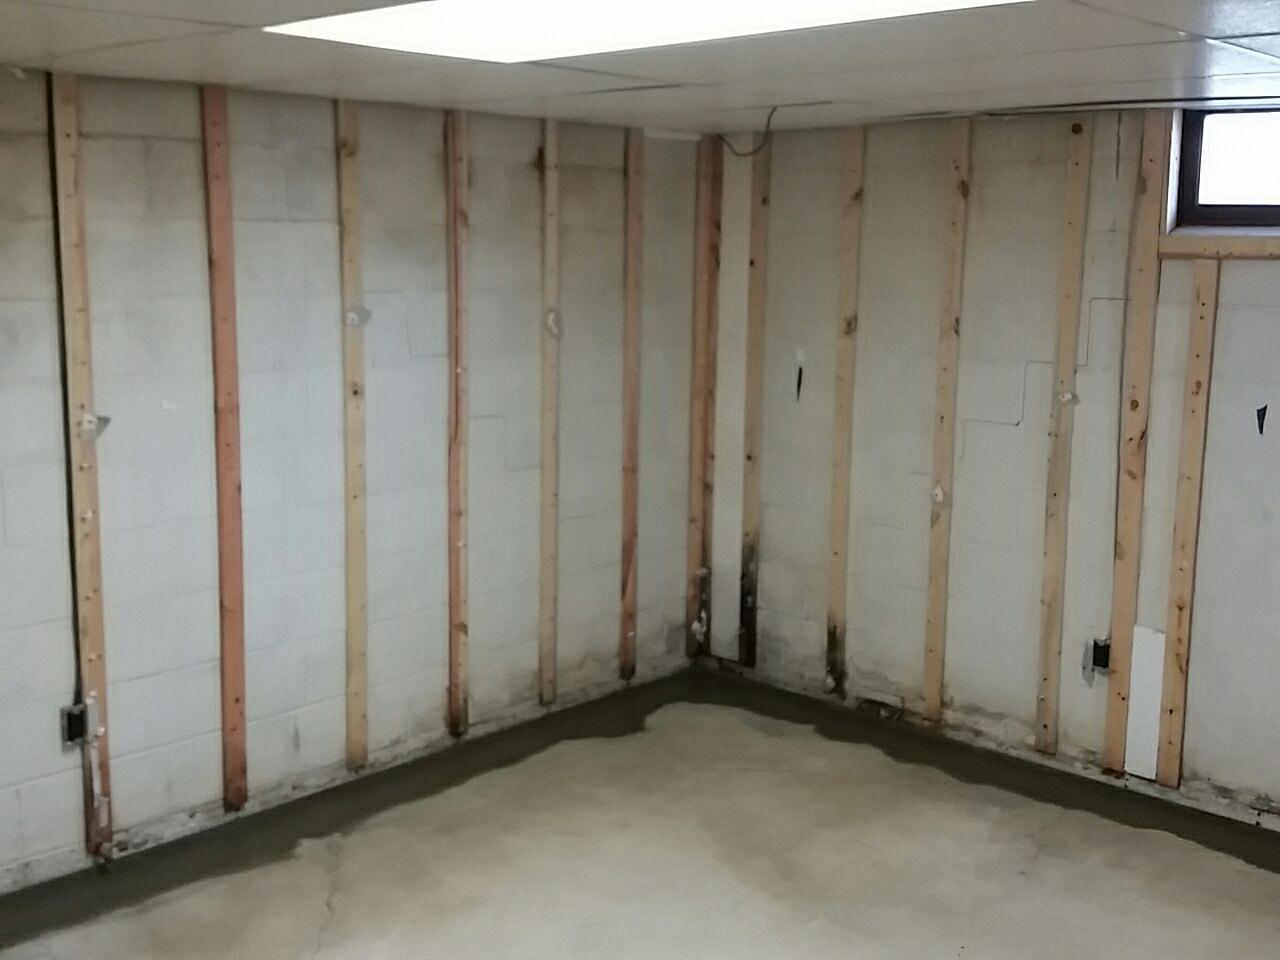 The system intercepts water and drains it safely to the TripleSafe Sump Pump to be pumped out of the basement.